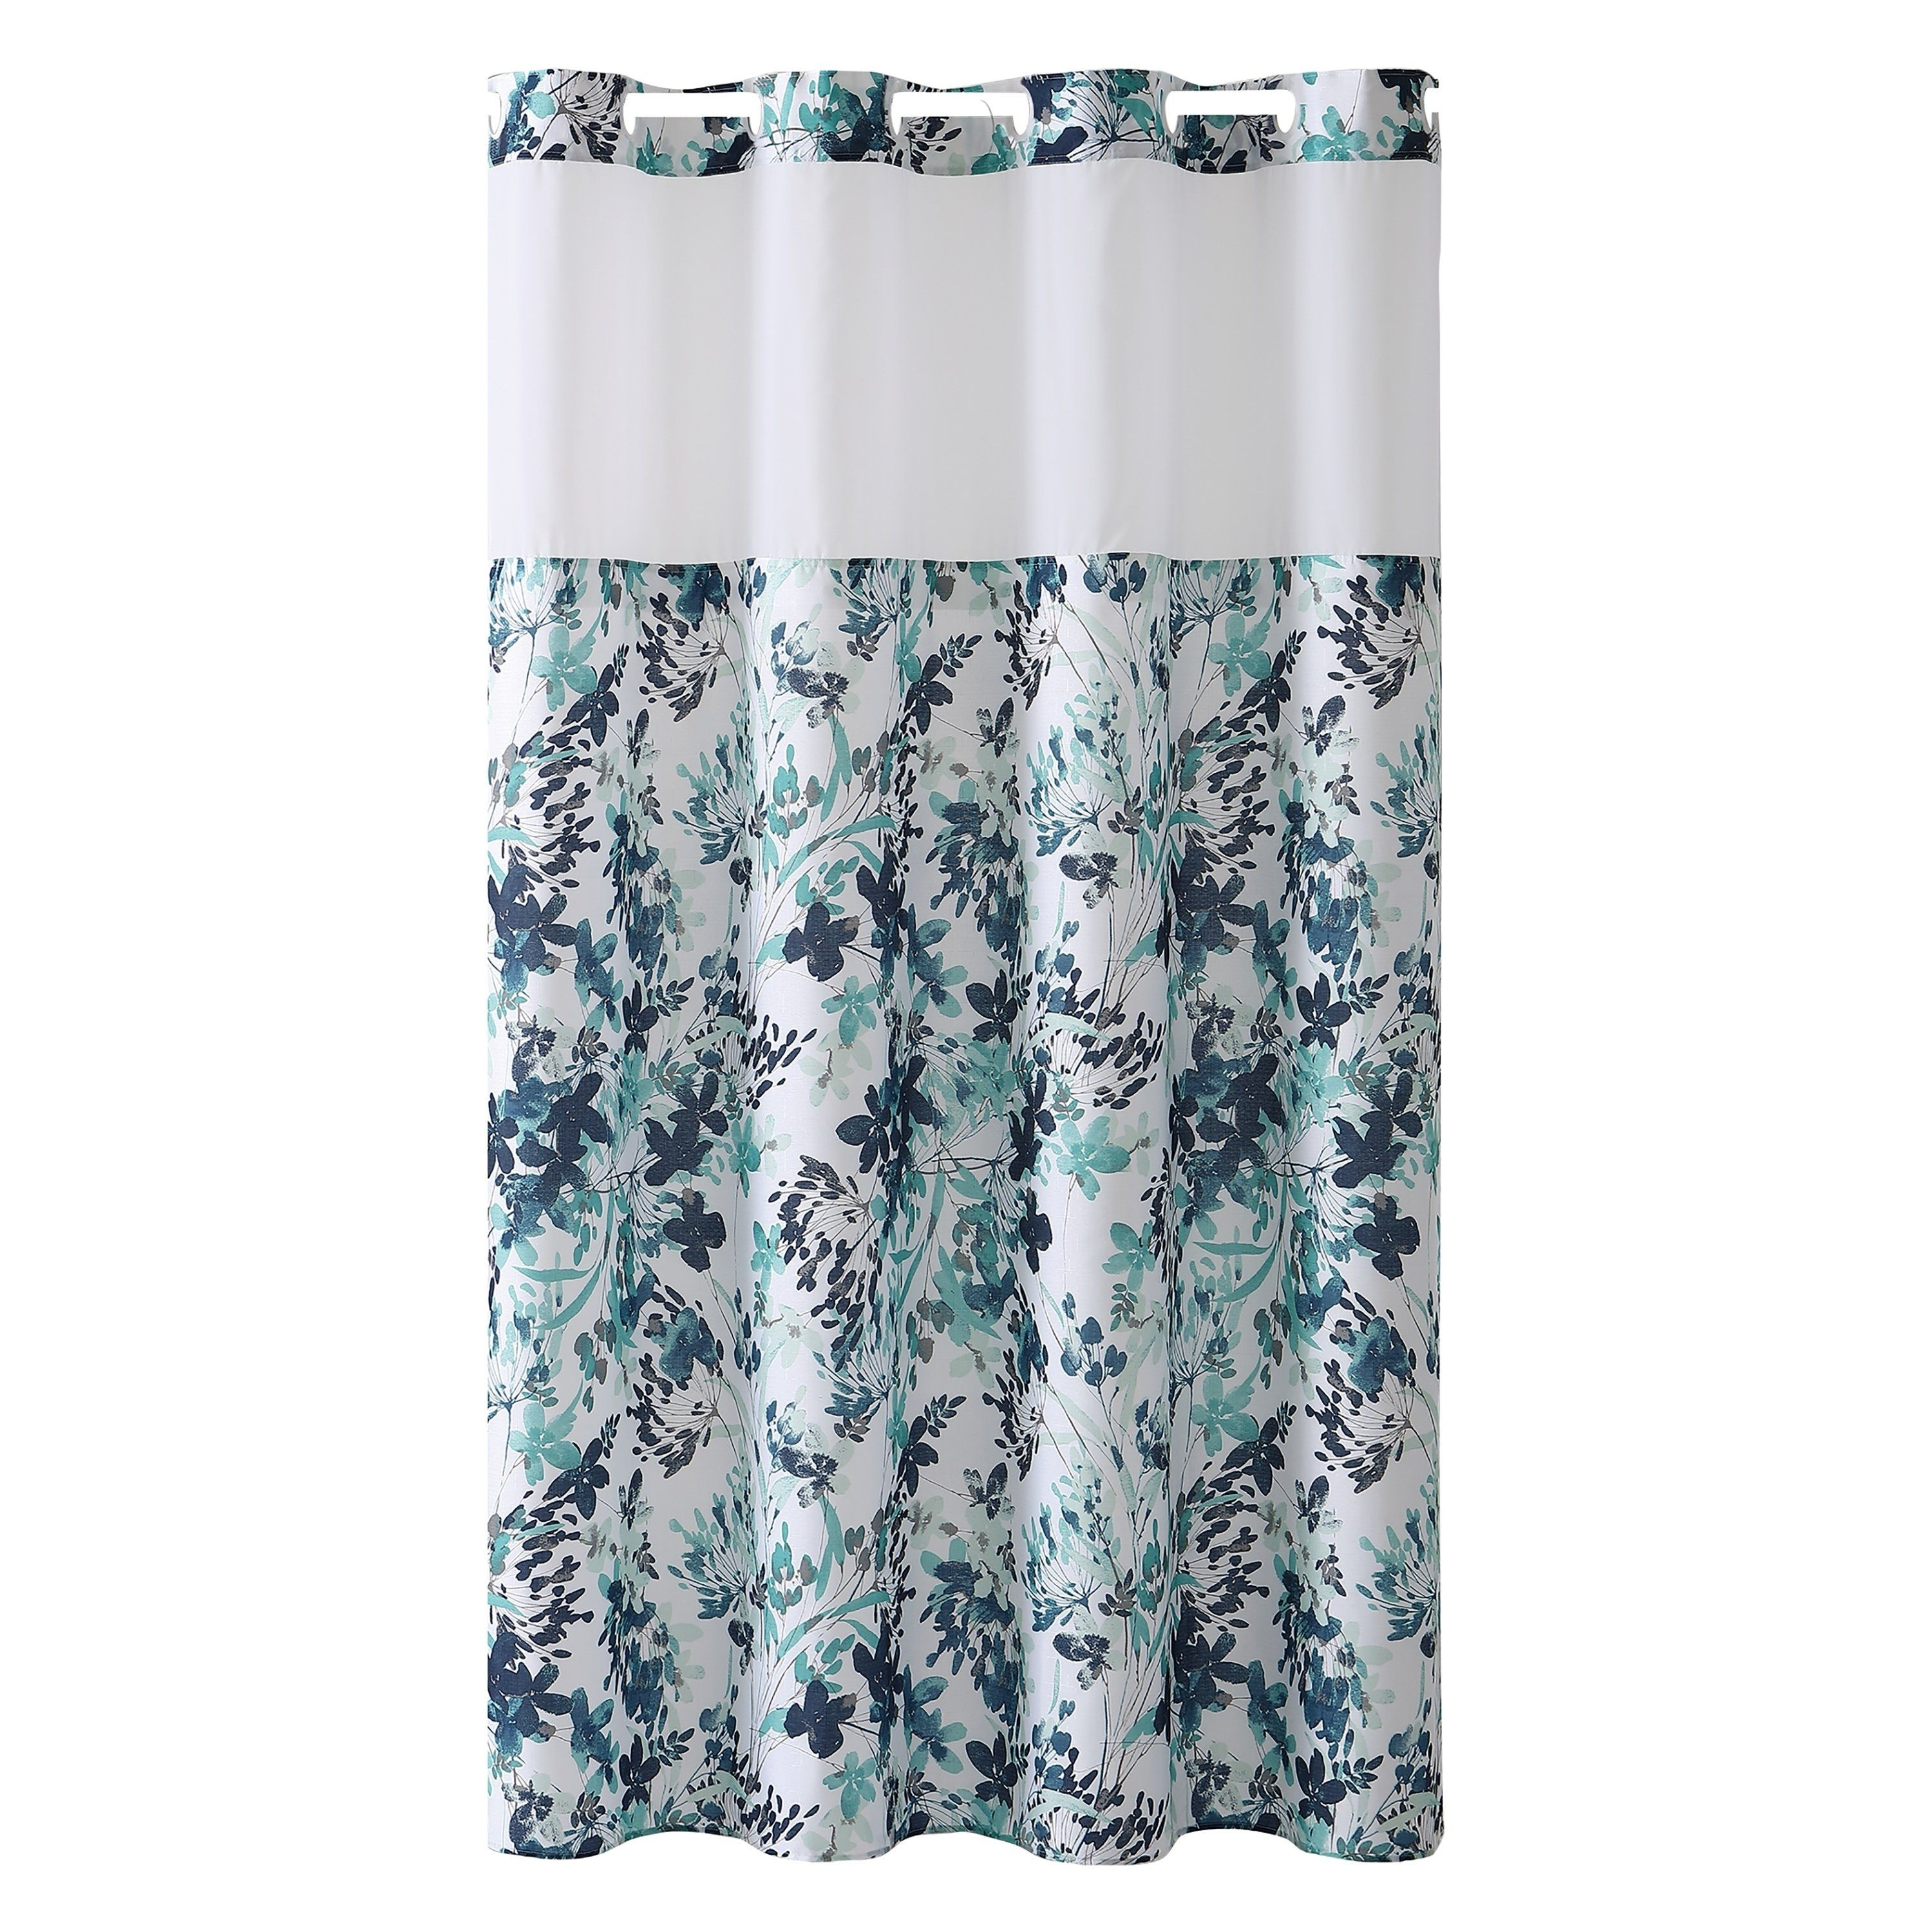 Hookless Shower Curtain Water Color Floral Print Aqua Blue